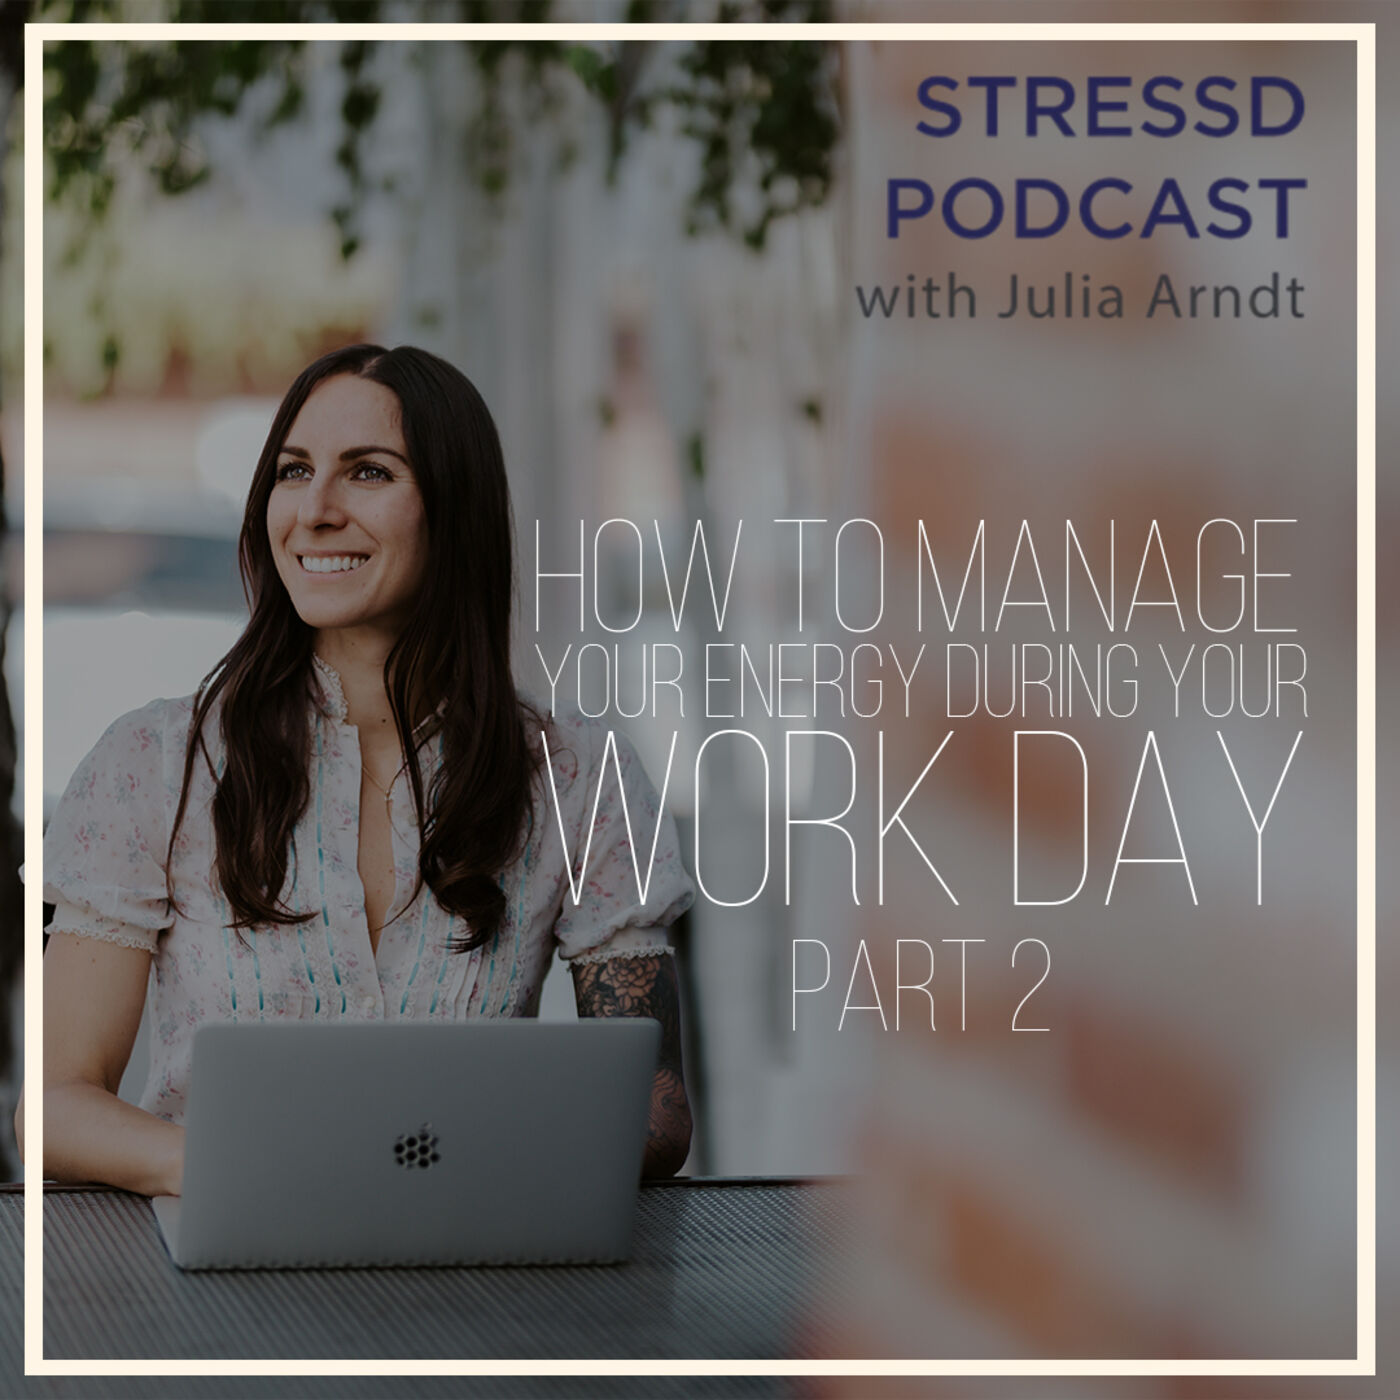 How To Manage Your Energy During Your Work Day (Part 2)